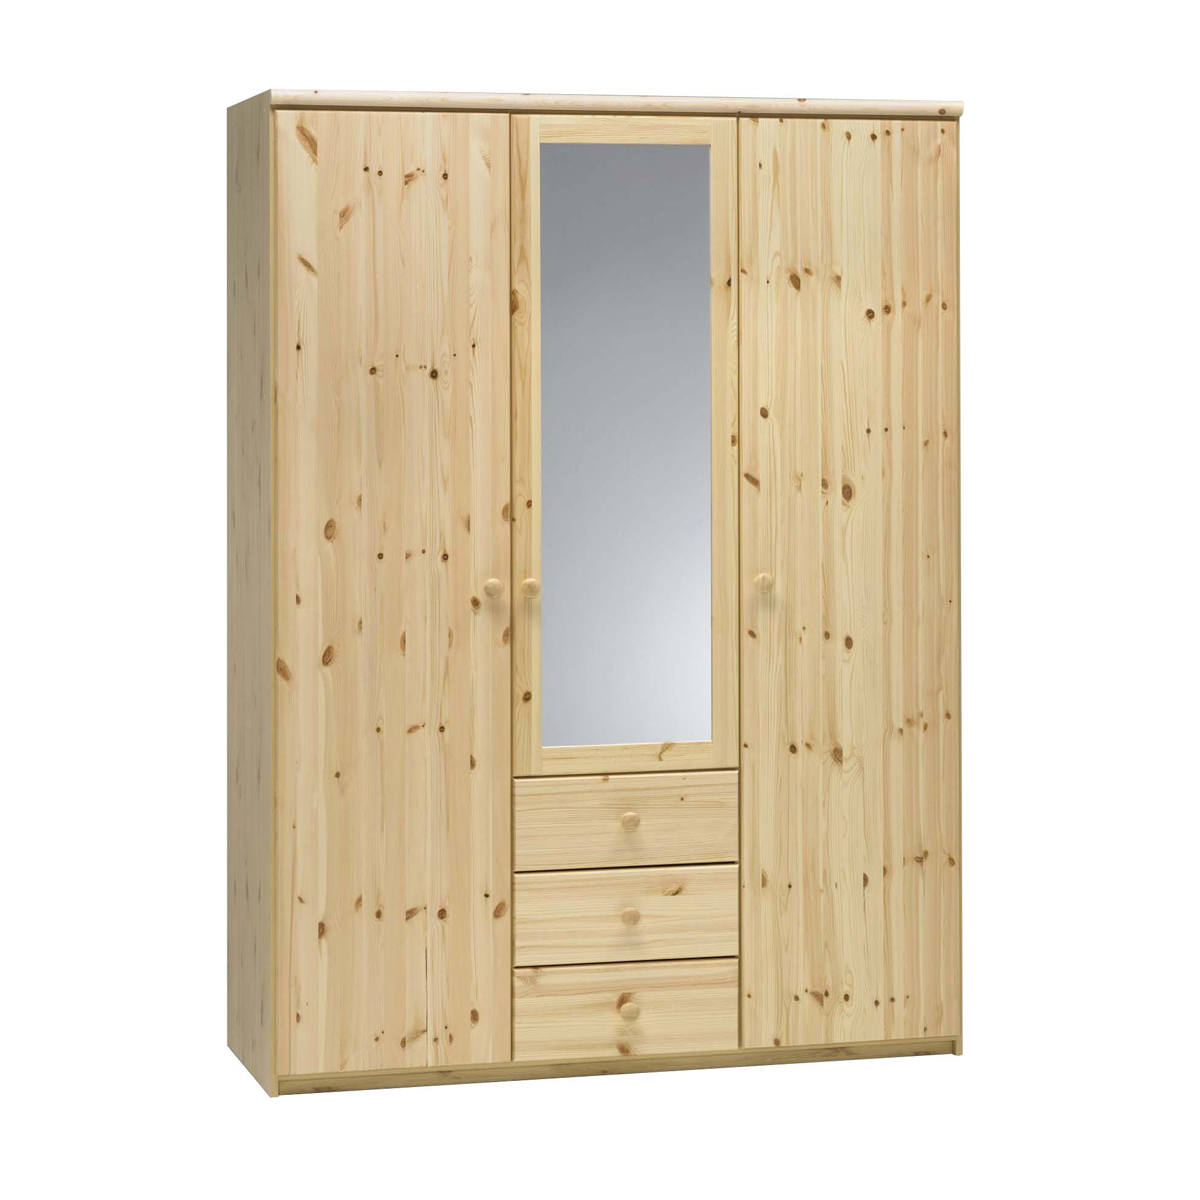 kleiderschrank axel dreht renschrank schrank in kiefer massiv und natur lackiert ebay. Black Bedroom Furniture Sets. Home Design Ideas